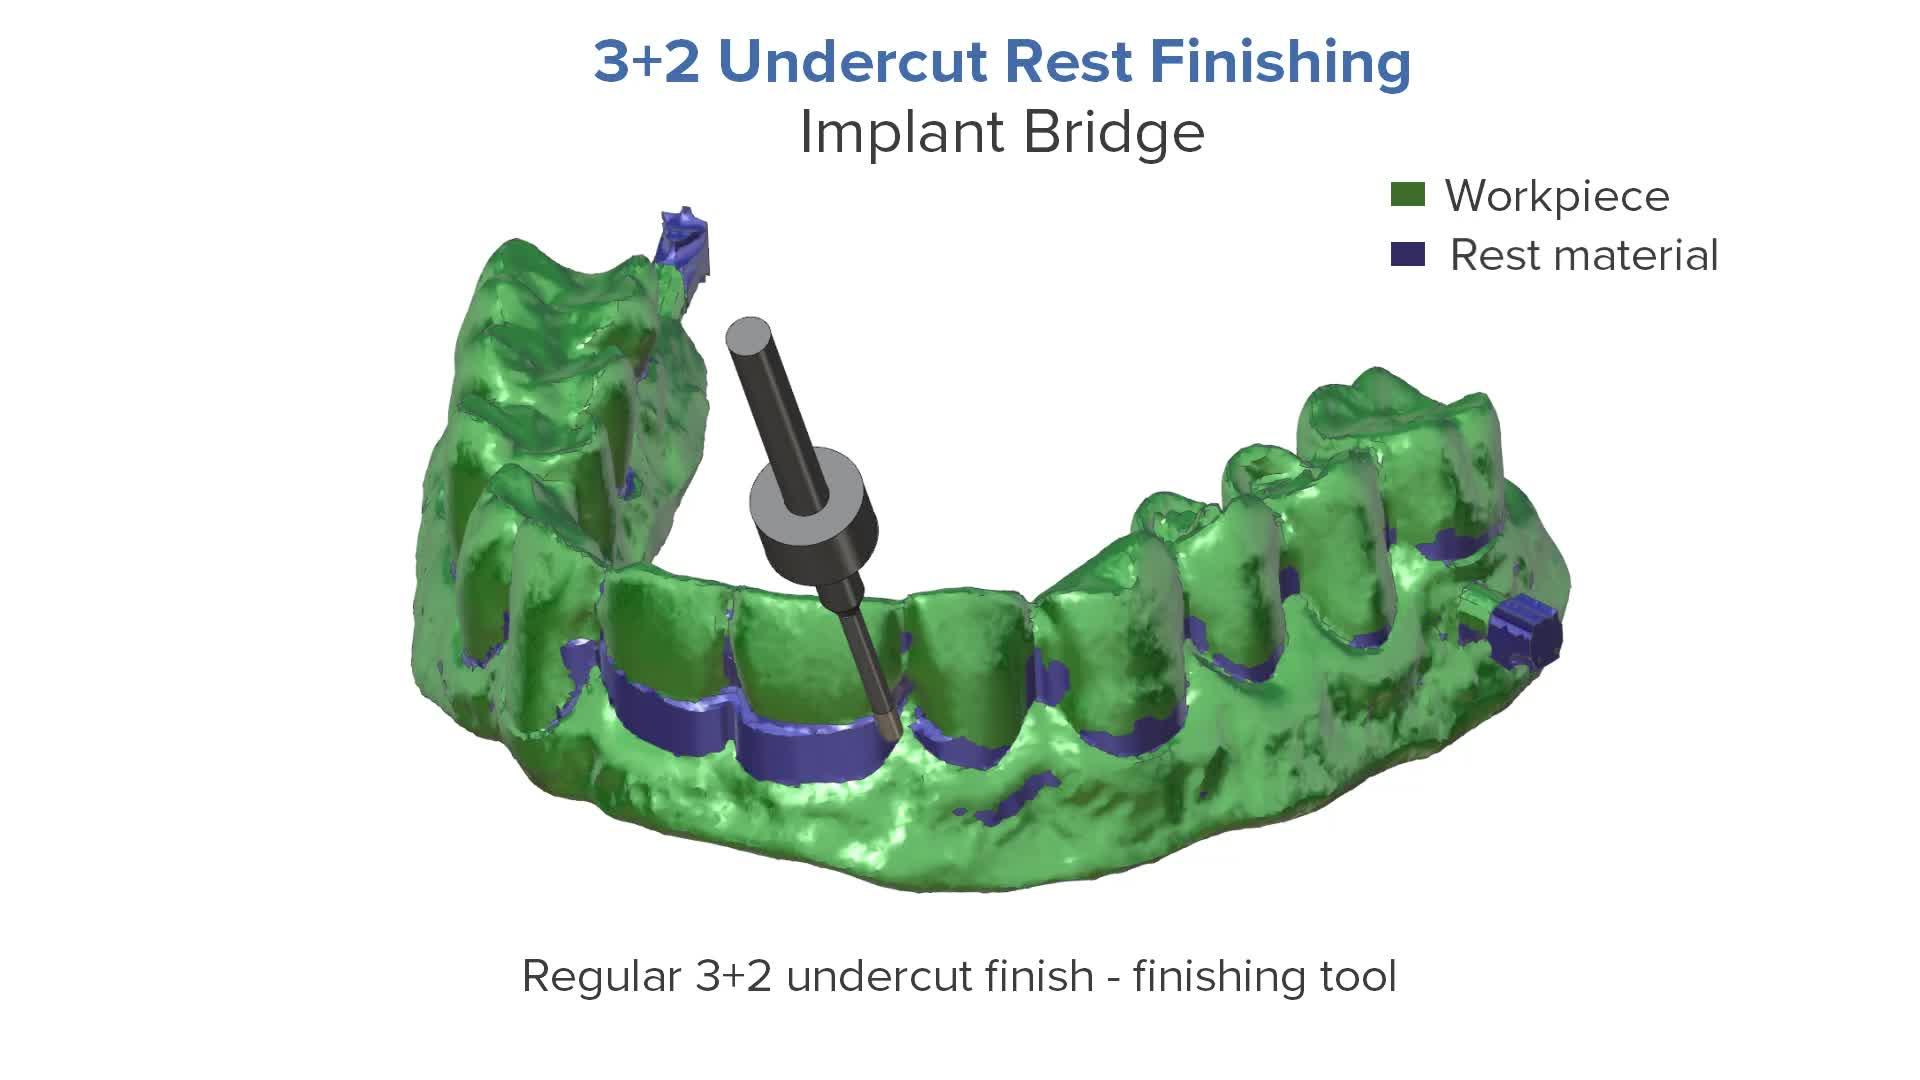 3+2 Undercut Rest Finishing